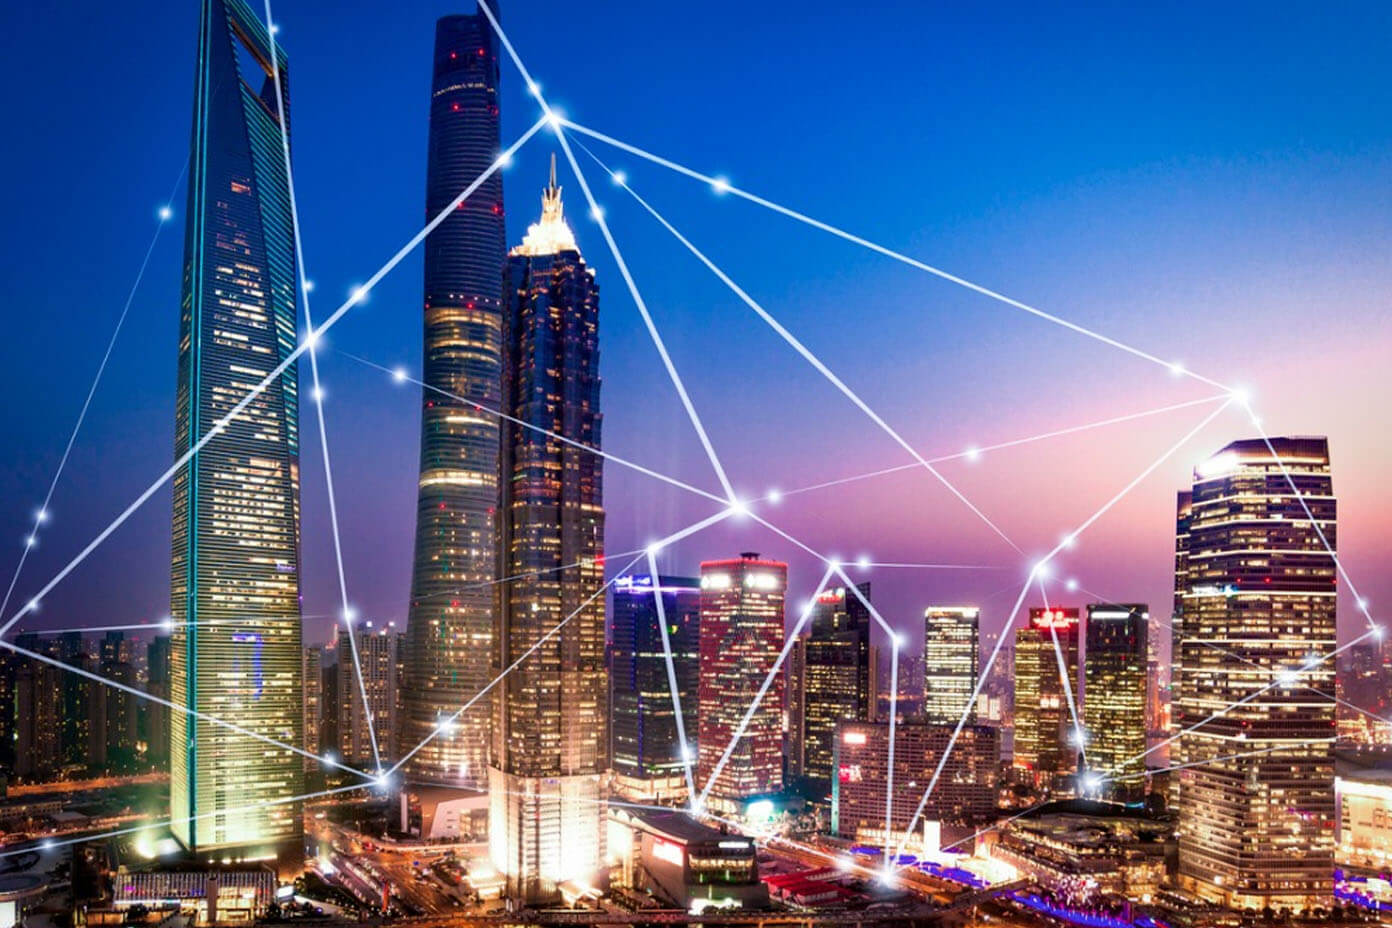 Top Trends for Smart City in 2021